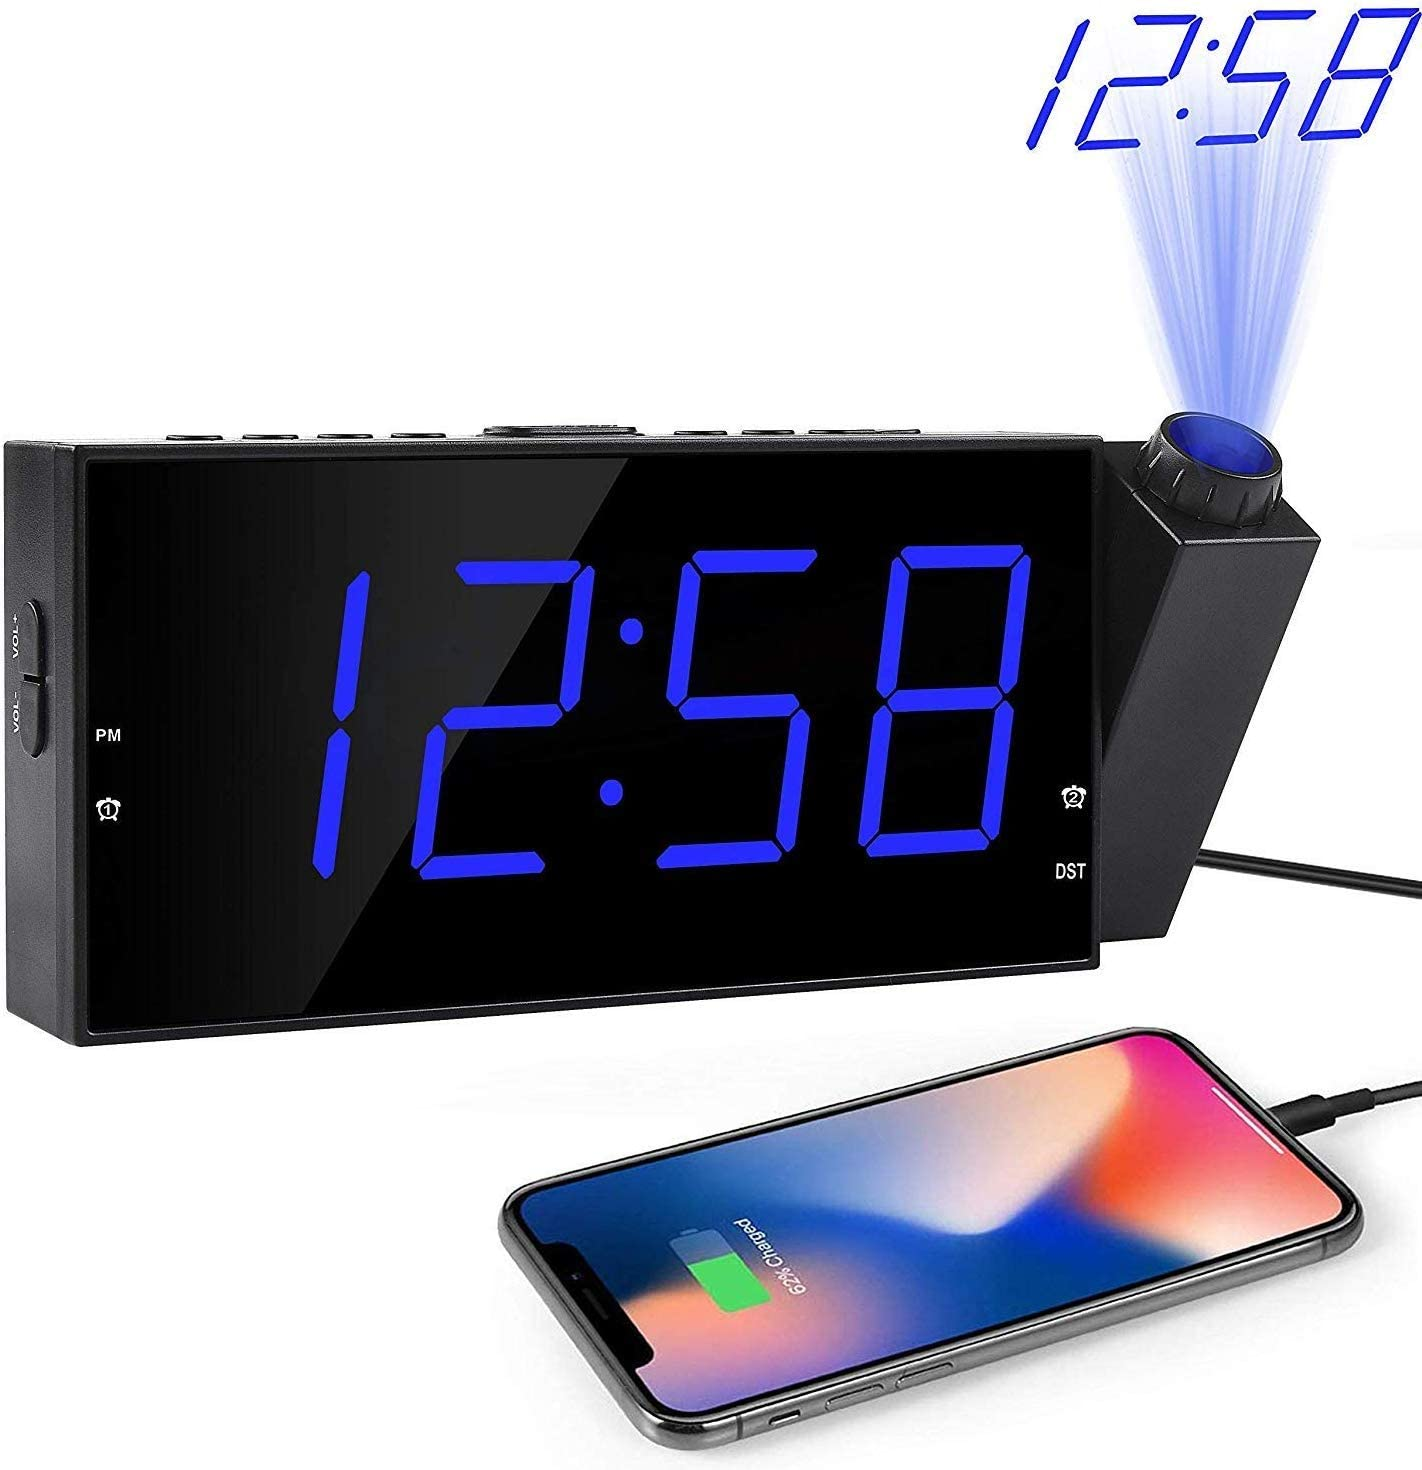 "OnLyee Projection Alarm Clock, Ceiling Wall Clock for Bedroom, 7"" LED Digital Desk/Shelf Clock with Dimmer, USB Charging, AC Powered and Battery Backup for Kitchen, Kids (Blue-Projection Clock)"